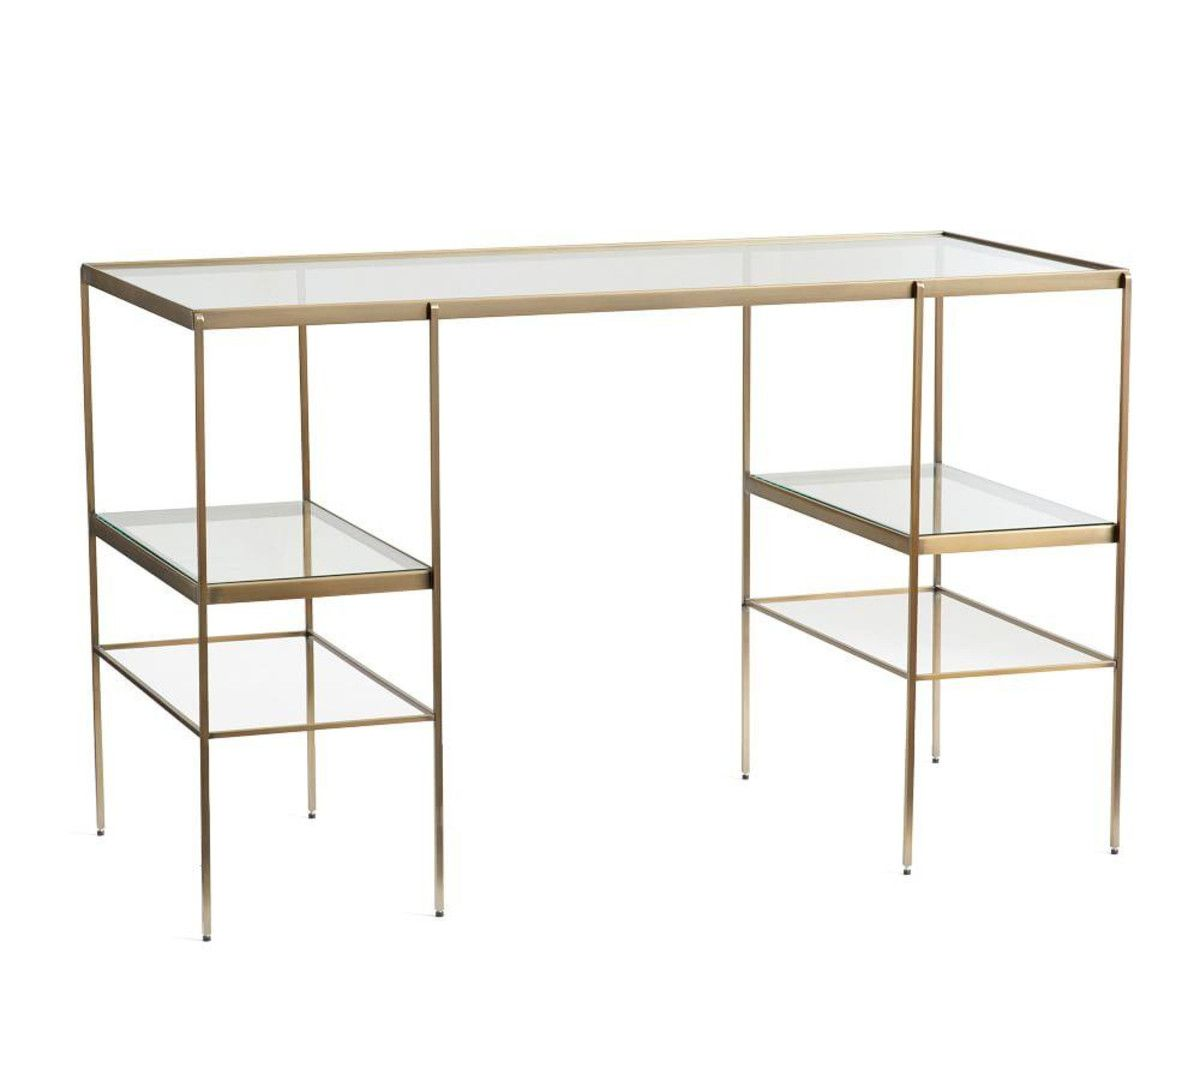 Leona Desk Cheap Living Room Sets Clearance Outdoor